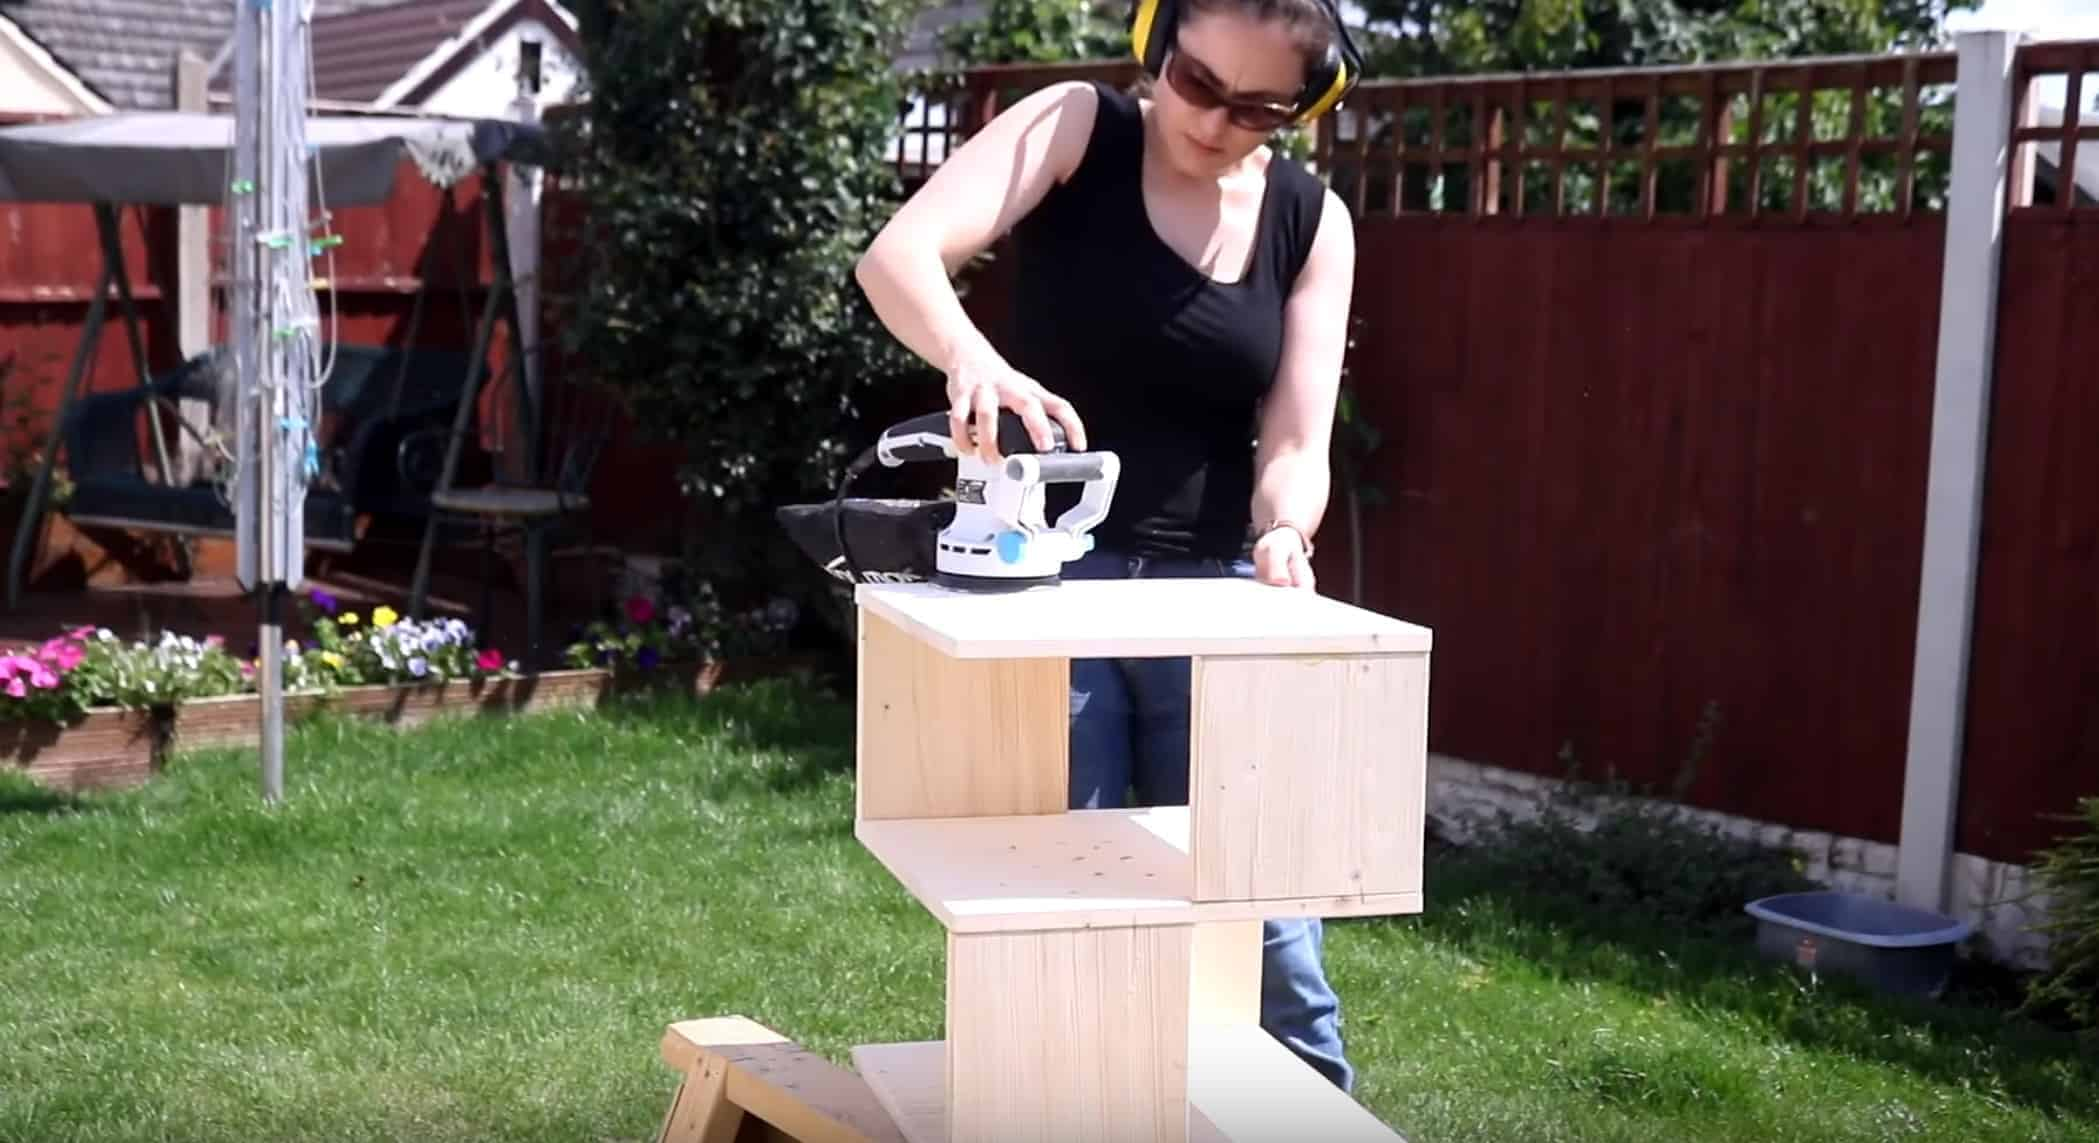 sanding diy side table with orbit sander